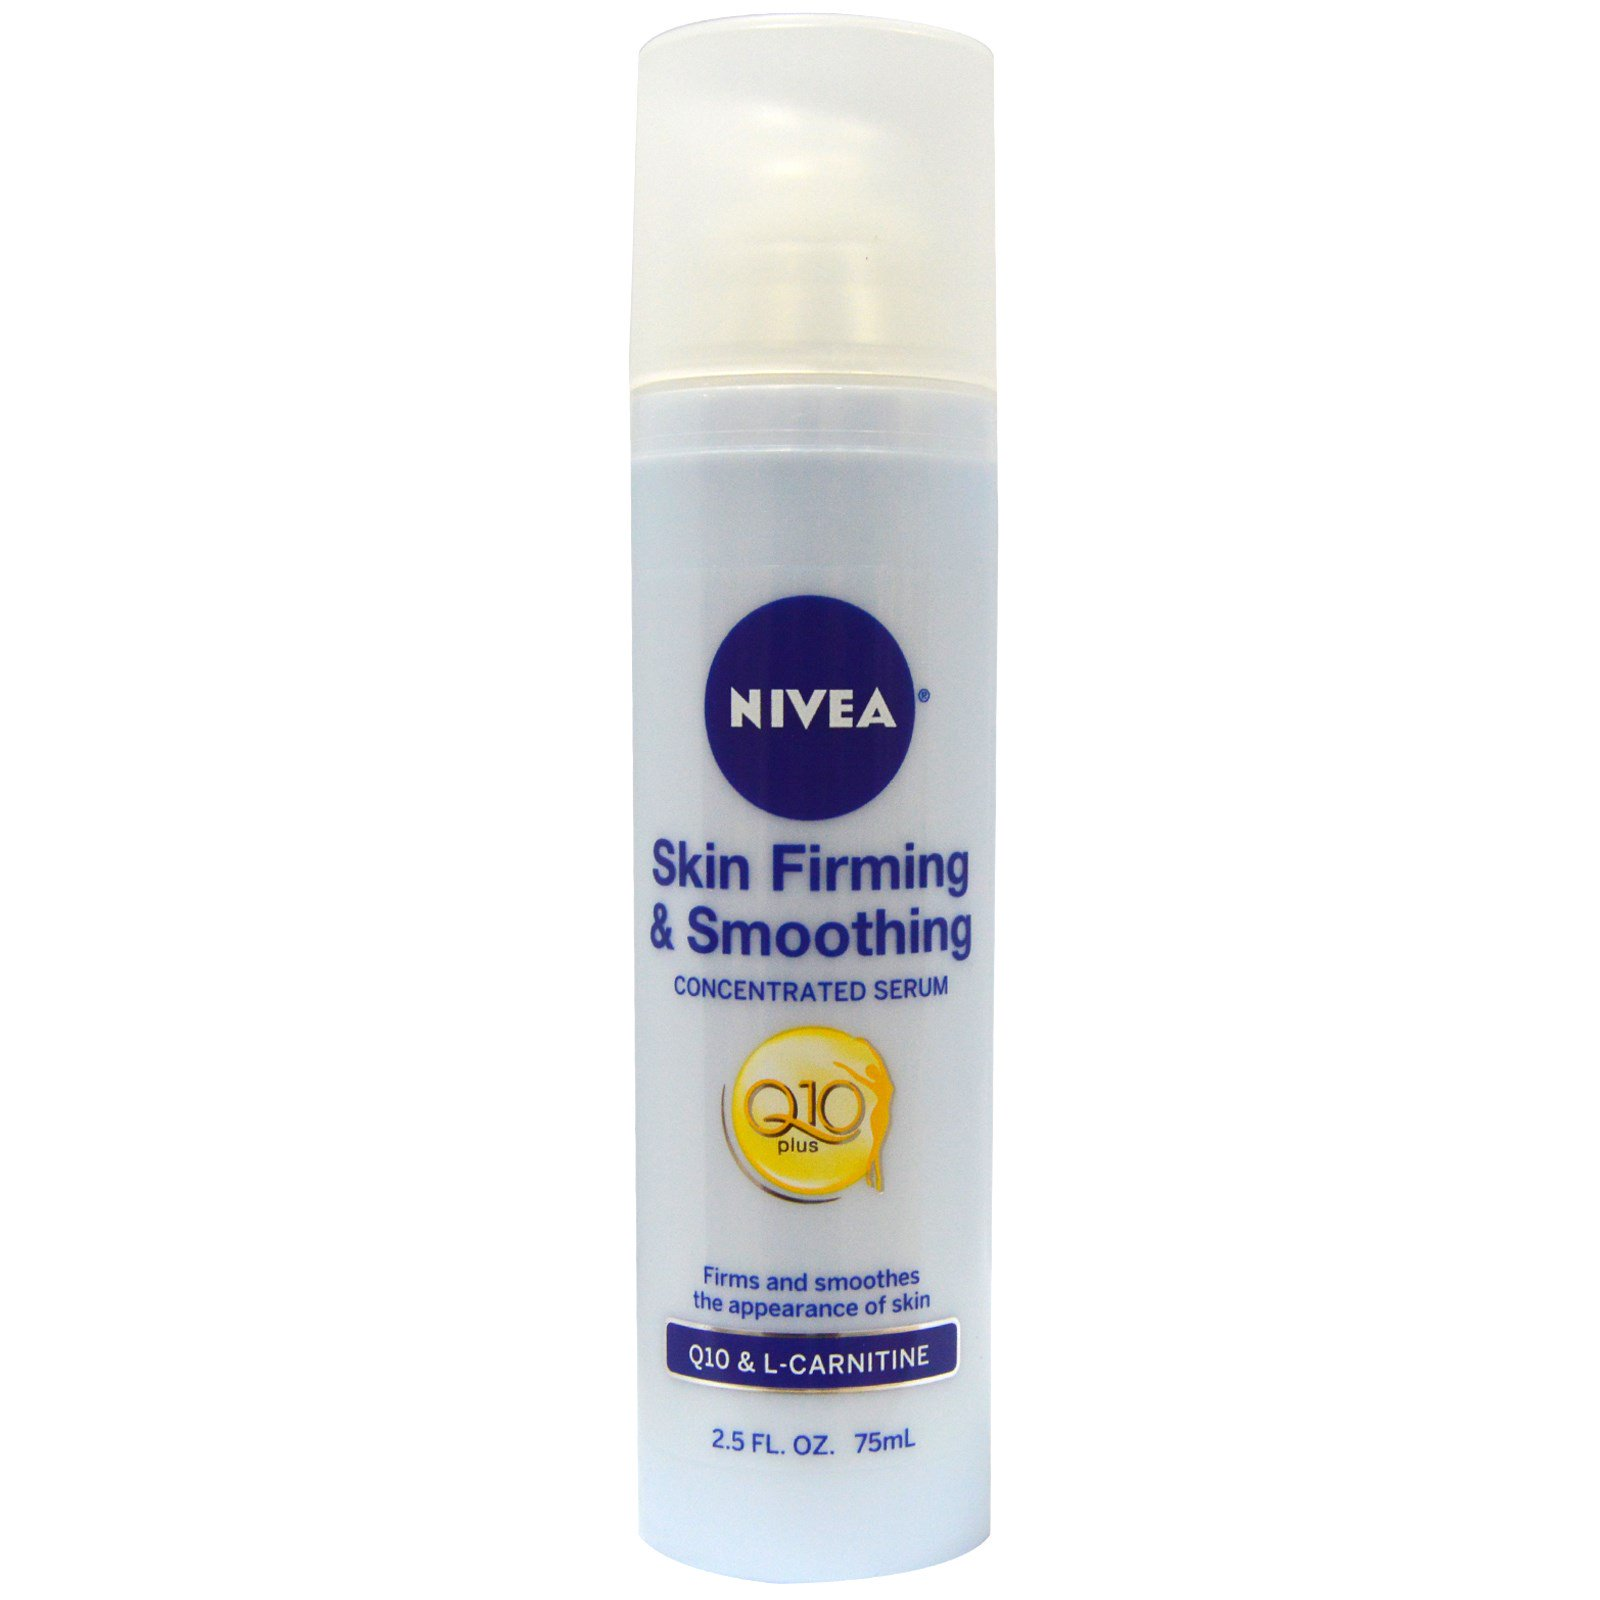 NIVEA Skin Firming  Smoothing Concentrated Serum 2.50 oz CAILYN DizzolvIt Makeup Melt Cleansing Cream 3.4 Oz